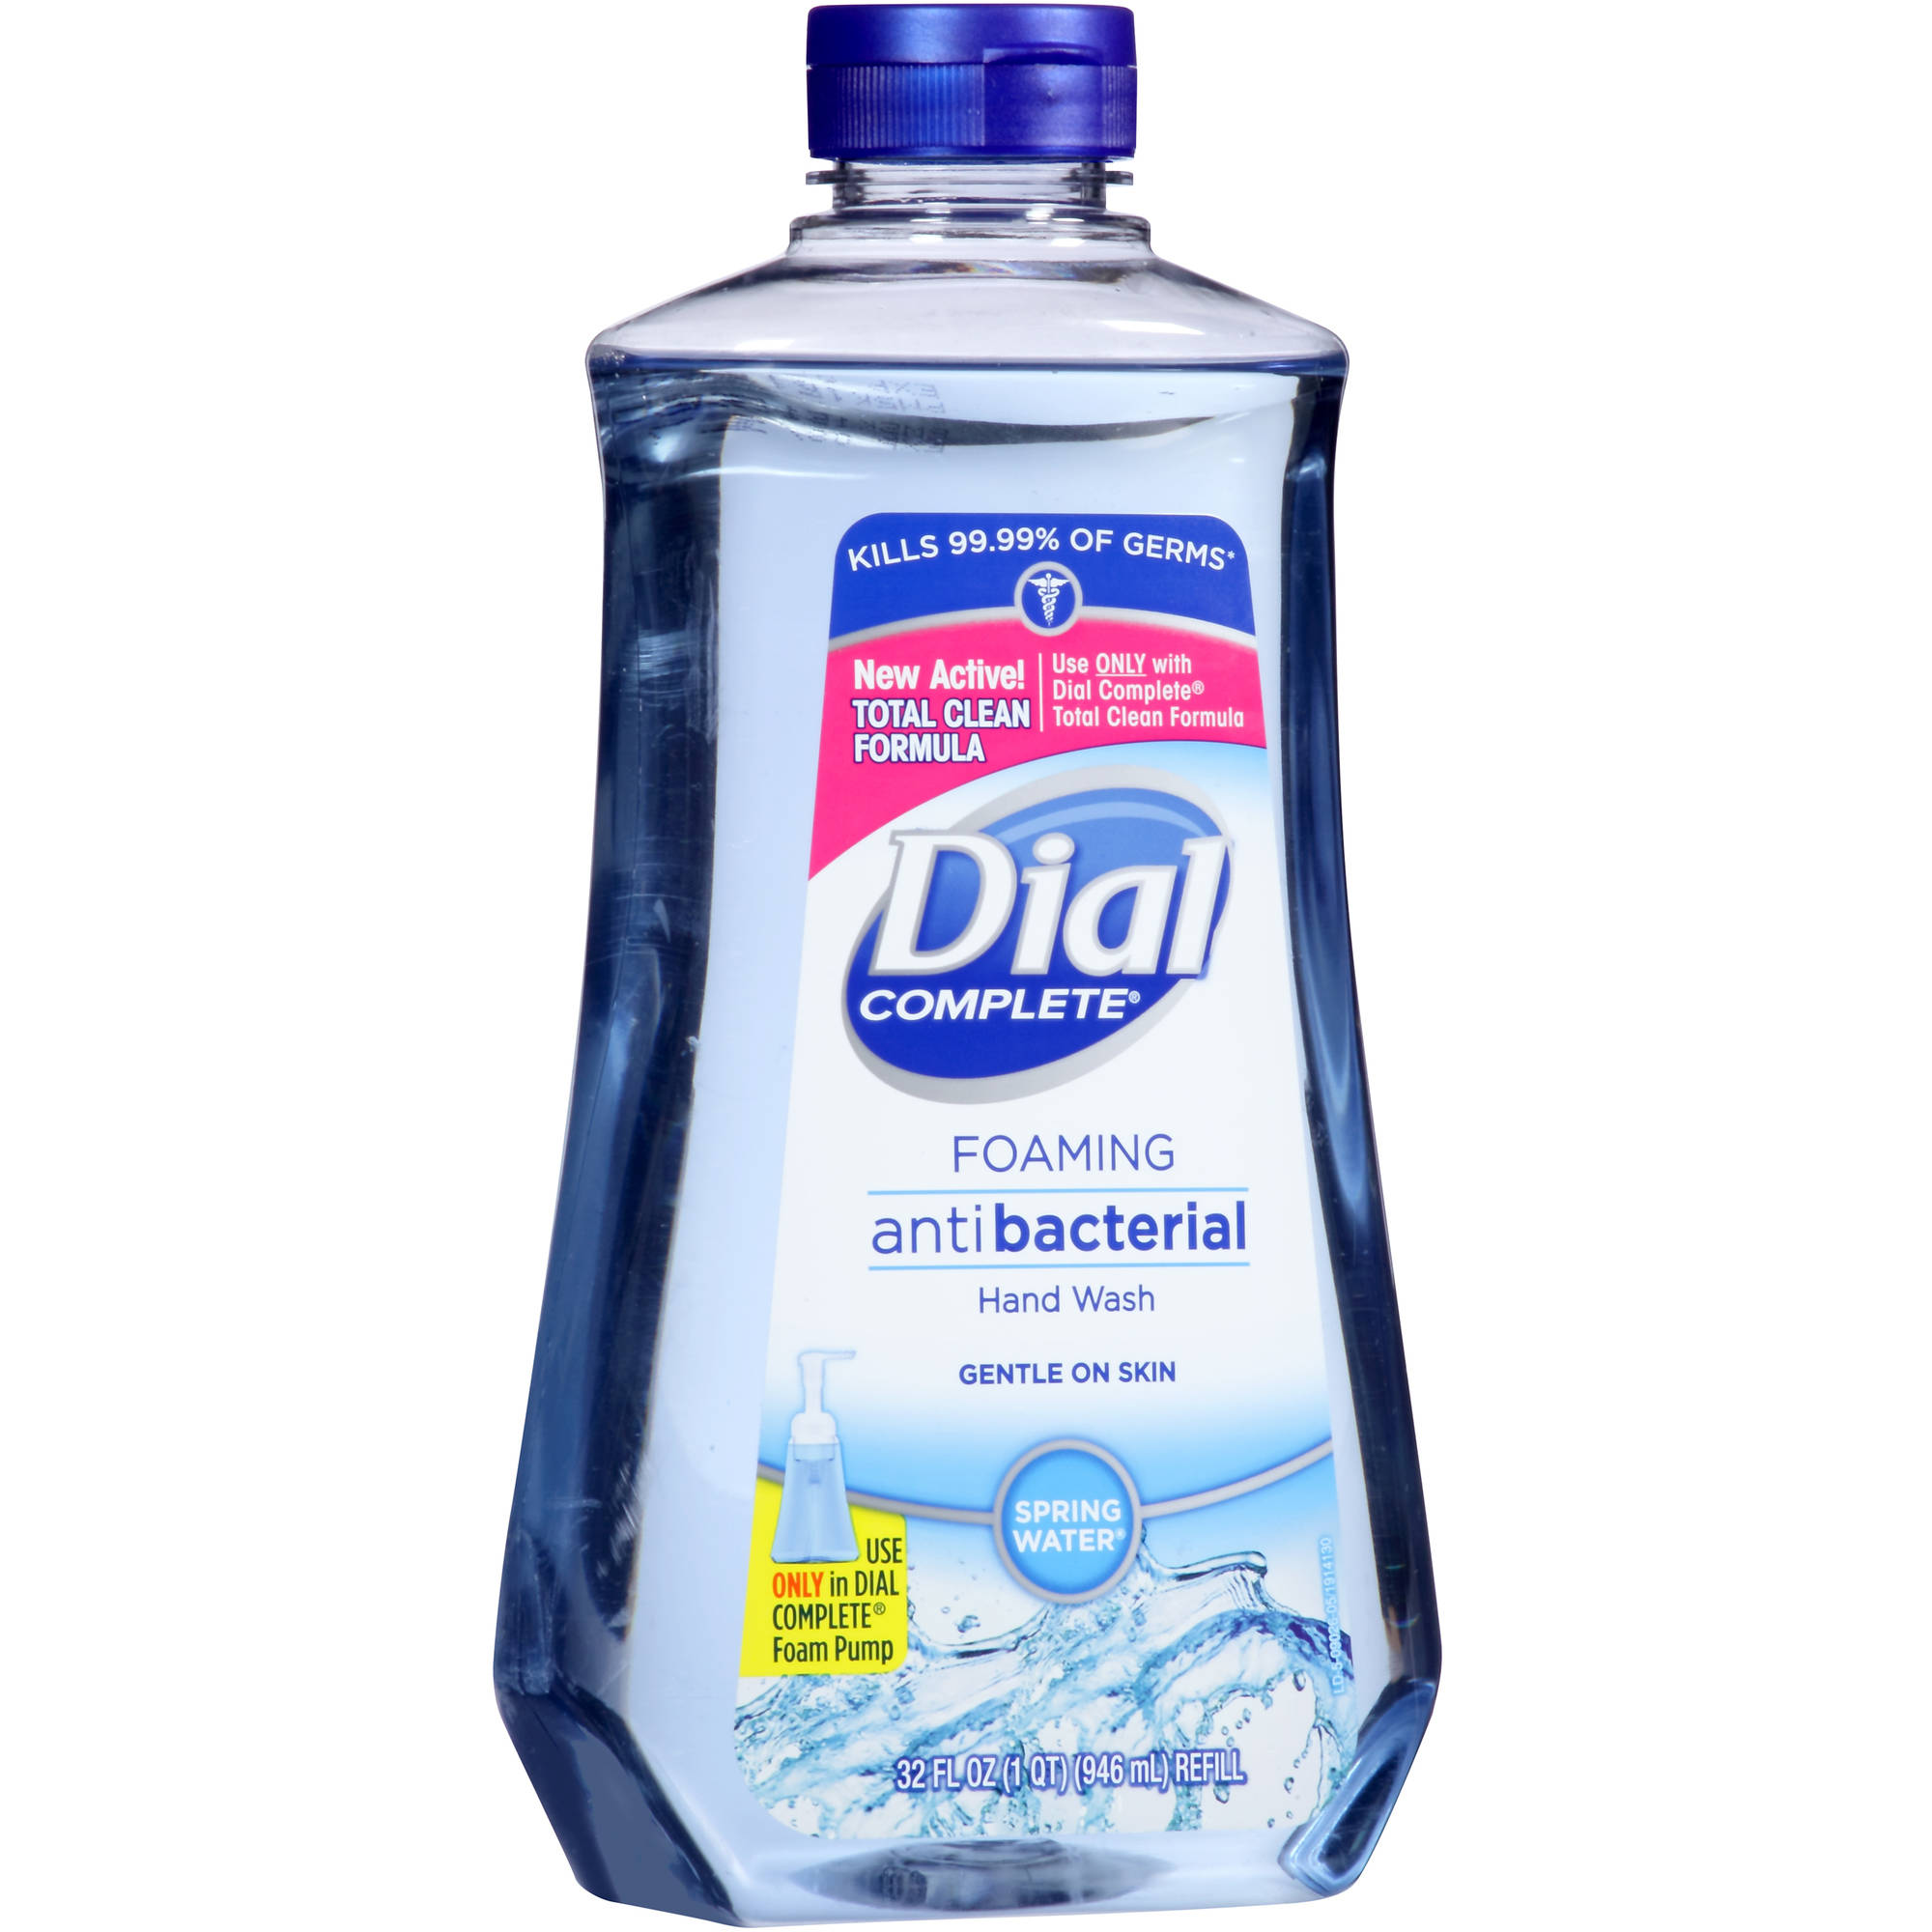 Dial Complete Spring Water Foaming Antibacterial Hand Wash, 32 oz